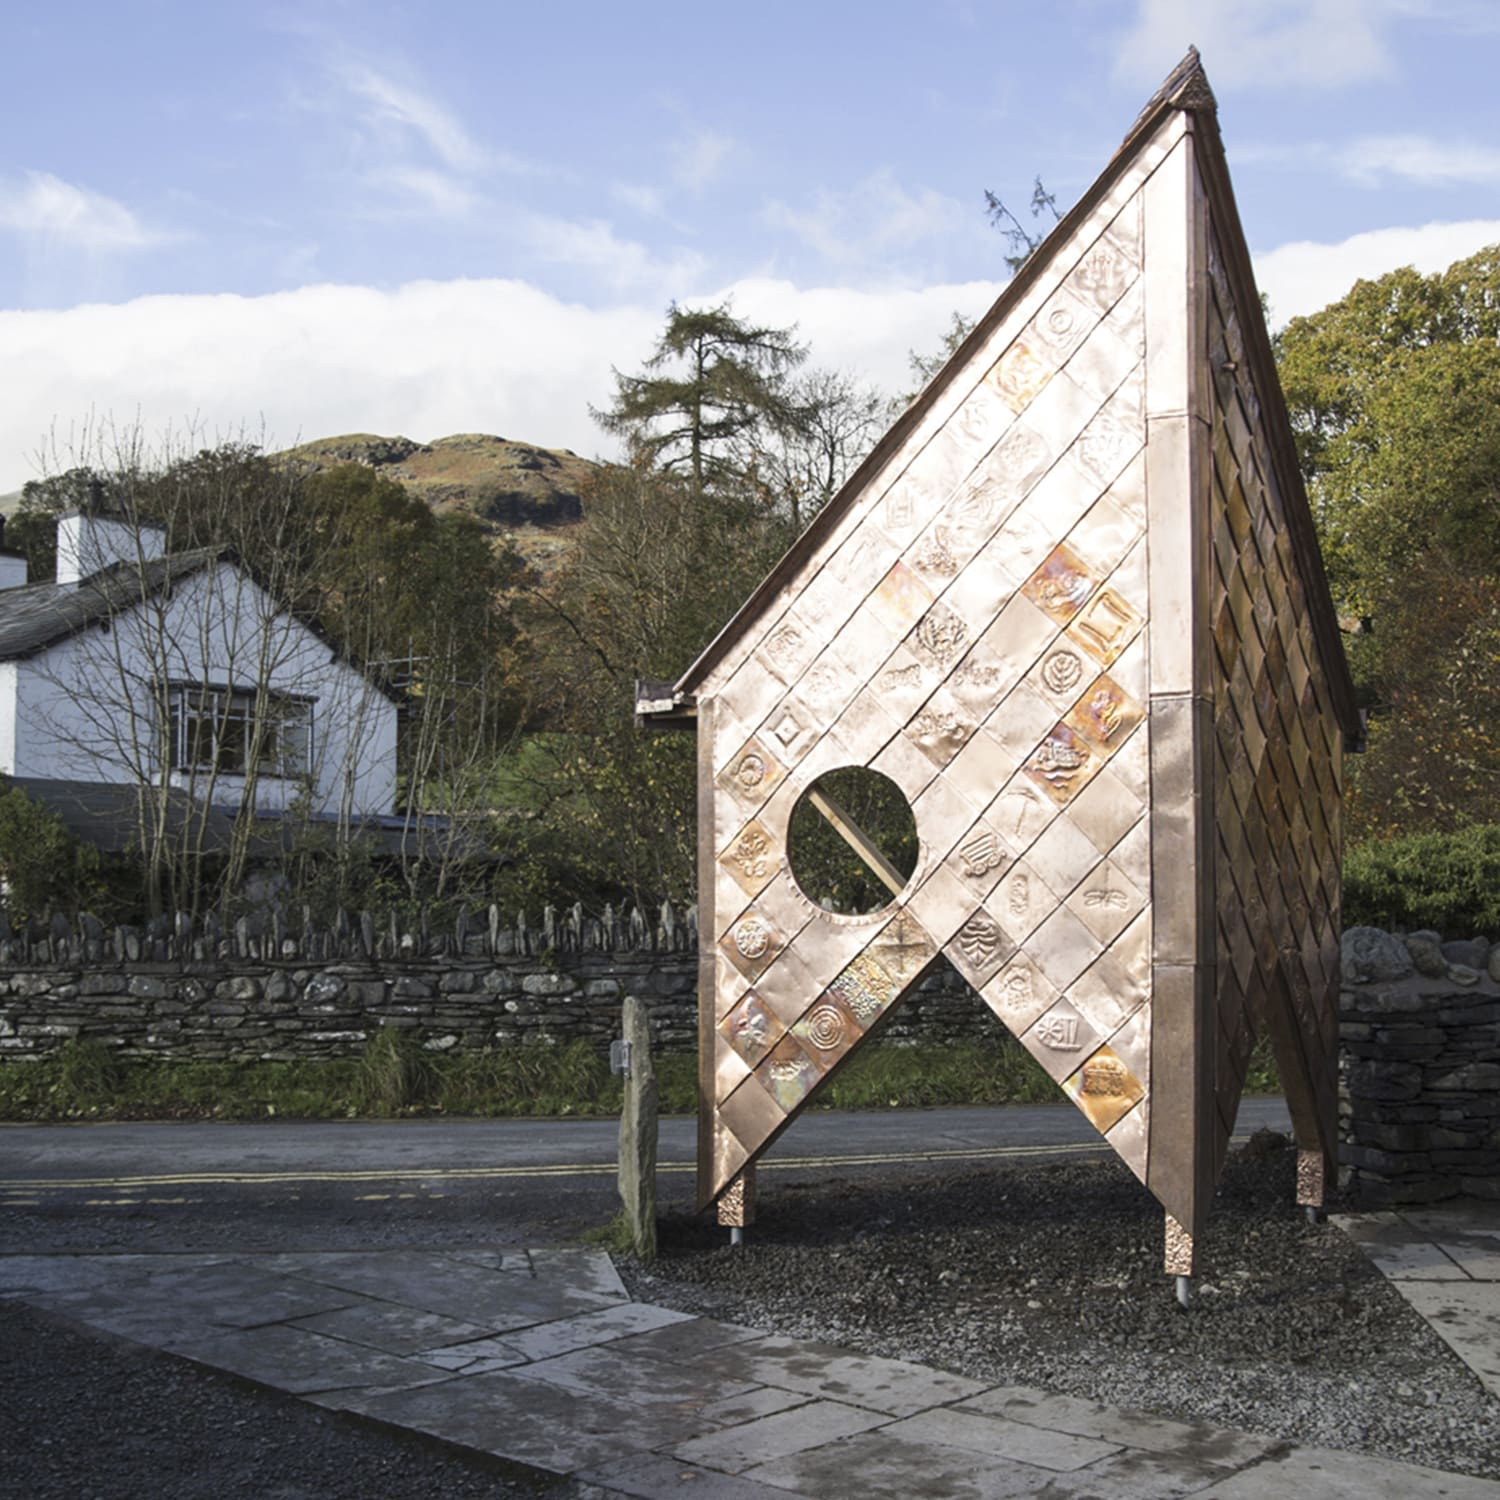 09_Grizedale-Arts_Information-kiosk-and-a-community-bread-oven_Credit-Takeshi-Hayatsu-CSM_MArch_Website-Update-2019.jpg